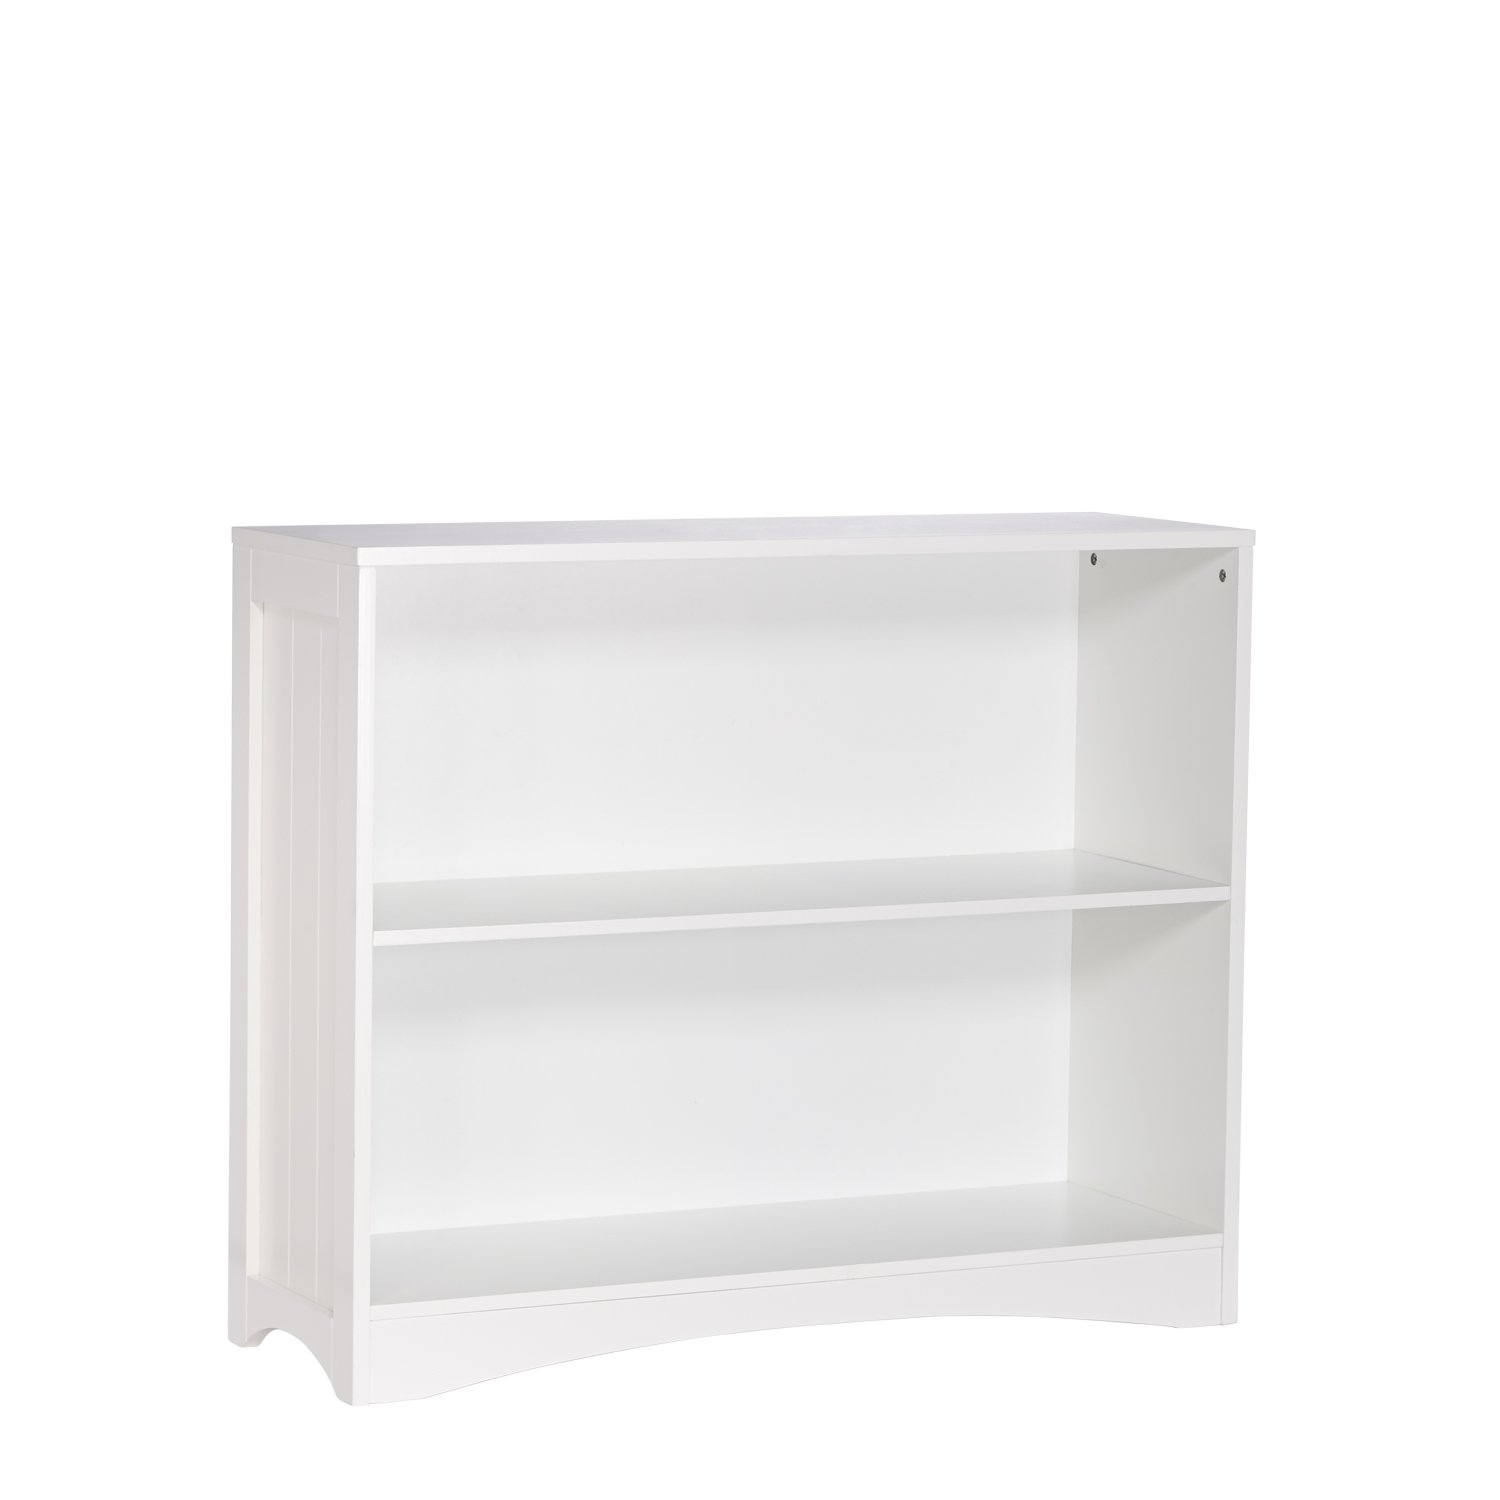 RiverRidge Horizontal Bookcase, White by RiverRidge Home